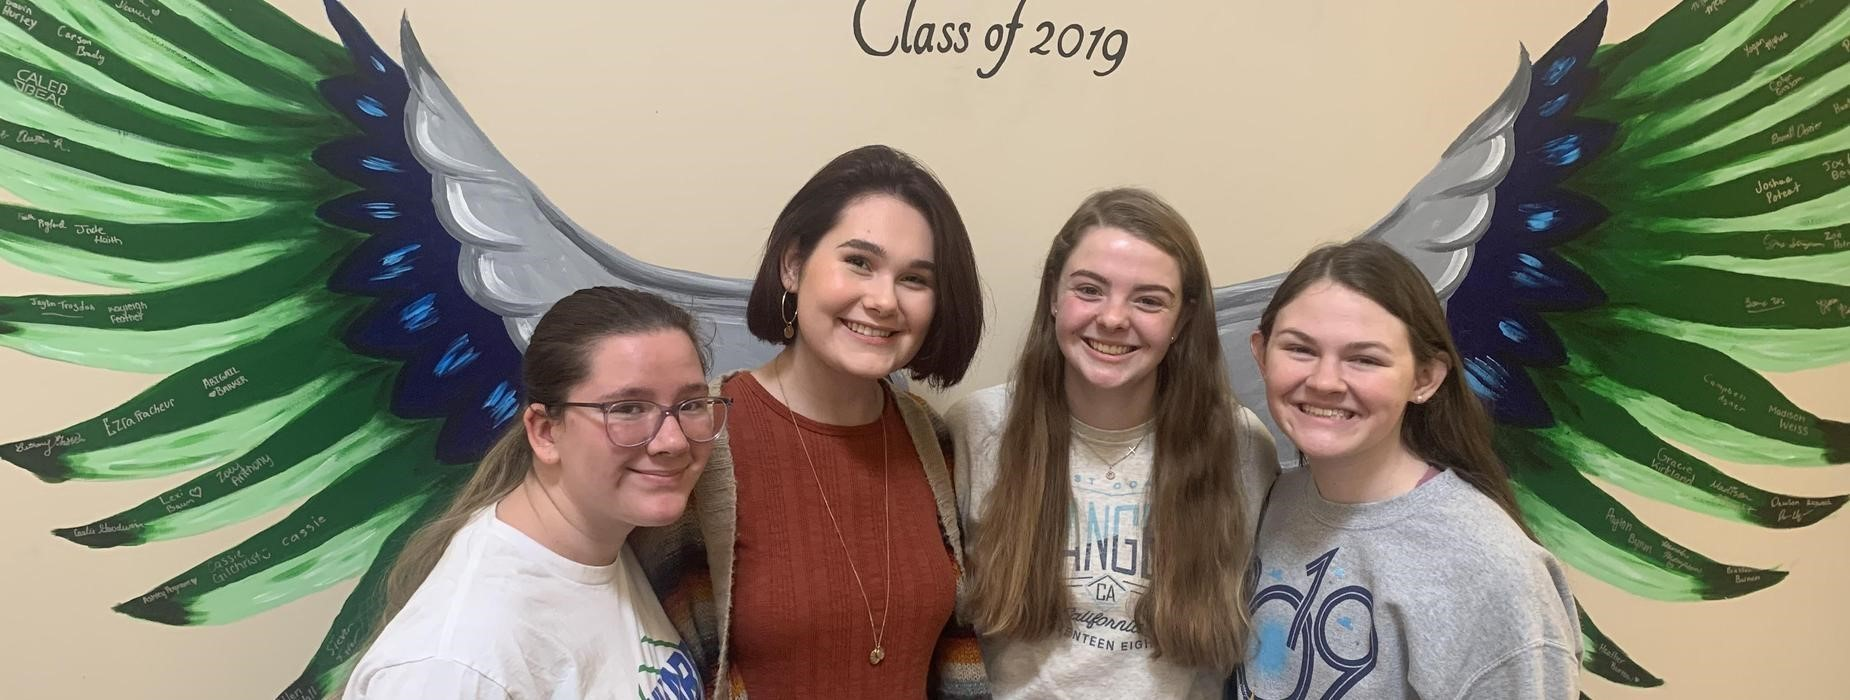 Students in front of wings mural Class of 2019